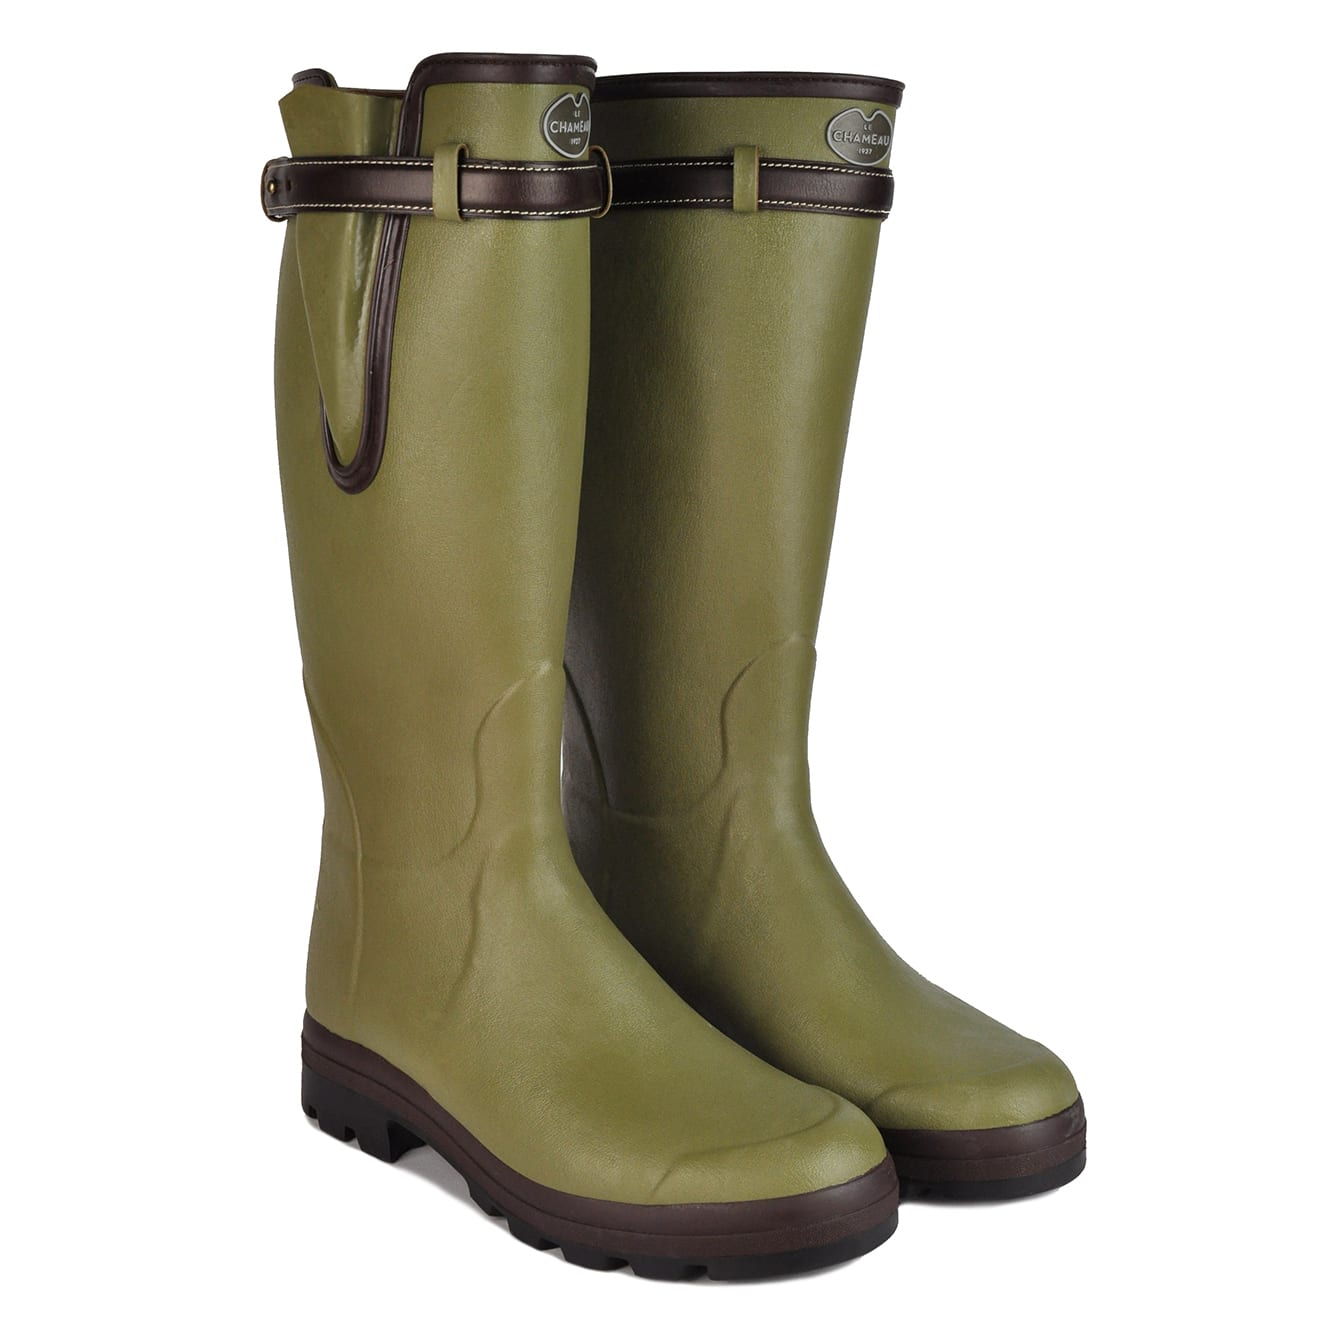 The Merino Sheepskin Wellington Boots. The fabulous Thorn & Field sheepskin boots combine a Merino wool lining with a water-proof rubber wrapper, making them ideal for cold outdoor activities such as walking the dog, supporting the local football team, long country rambles, and clearing leaves in .